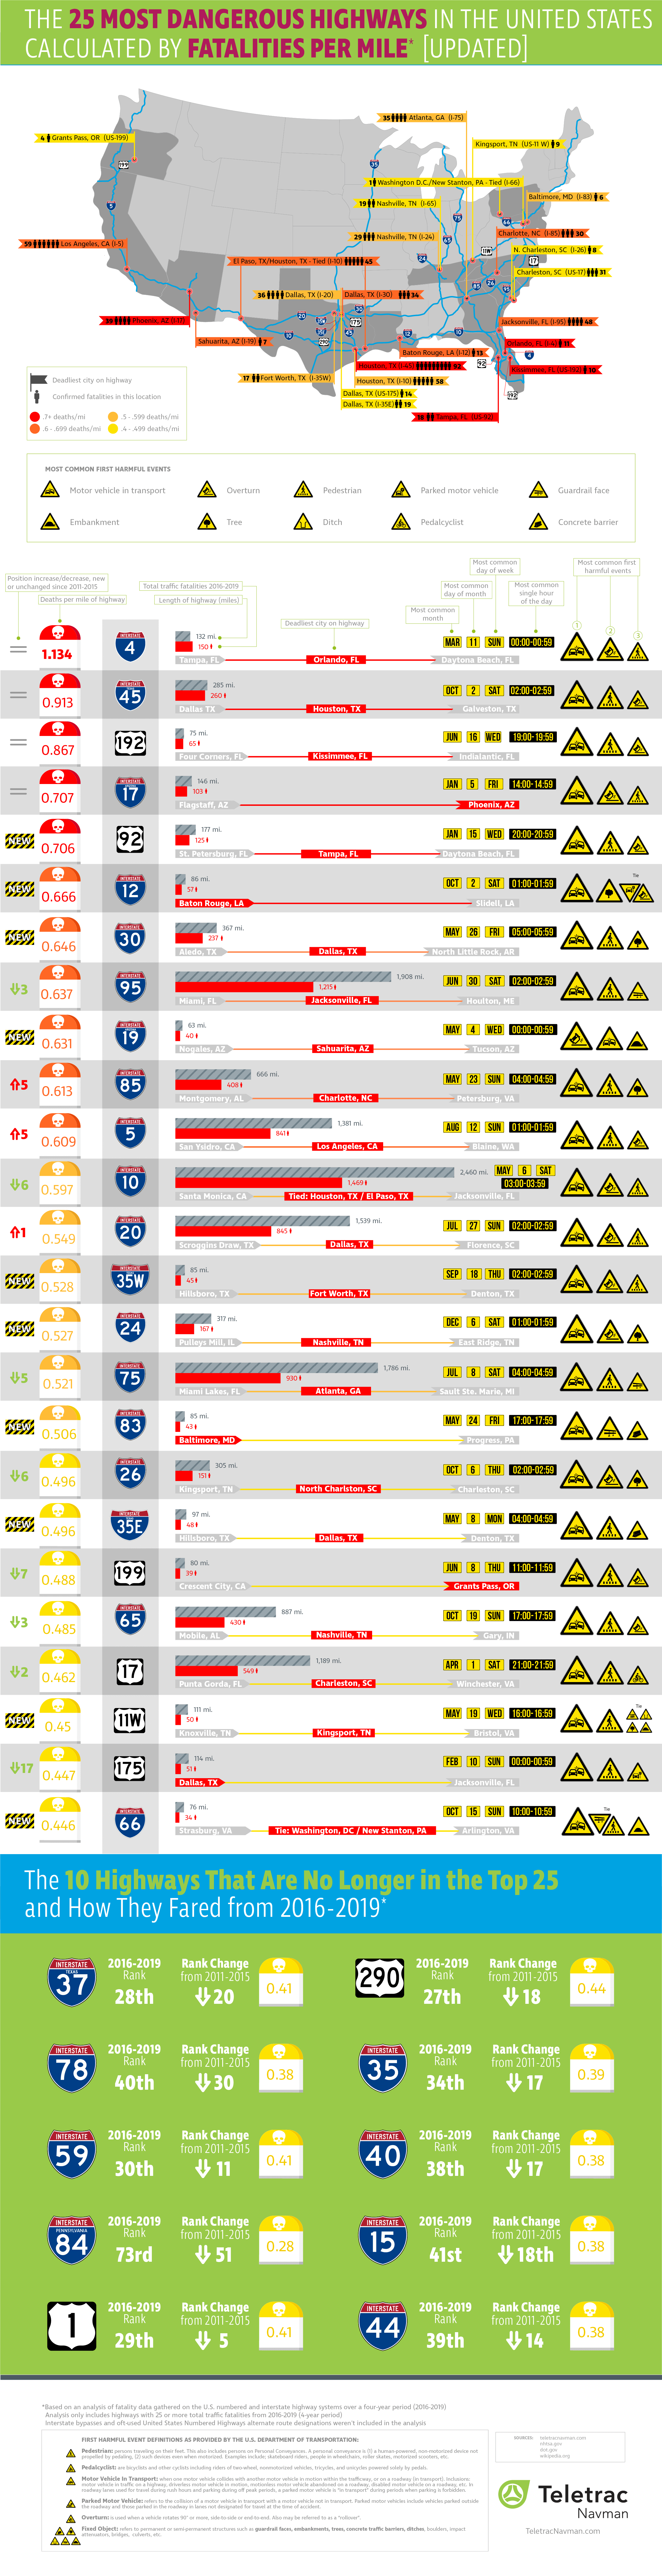 The 25 Most Dangerous Highways in the United States Calculated by Fatalities Per Mile